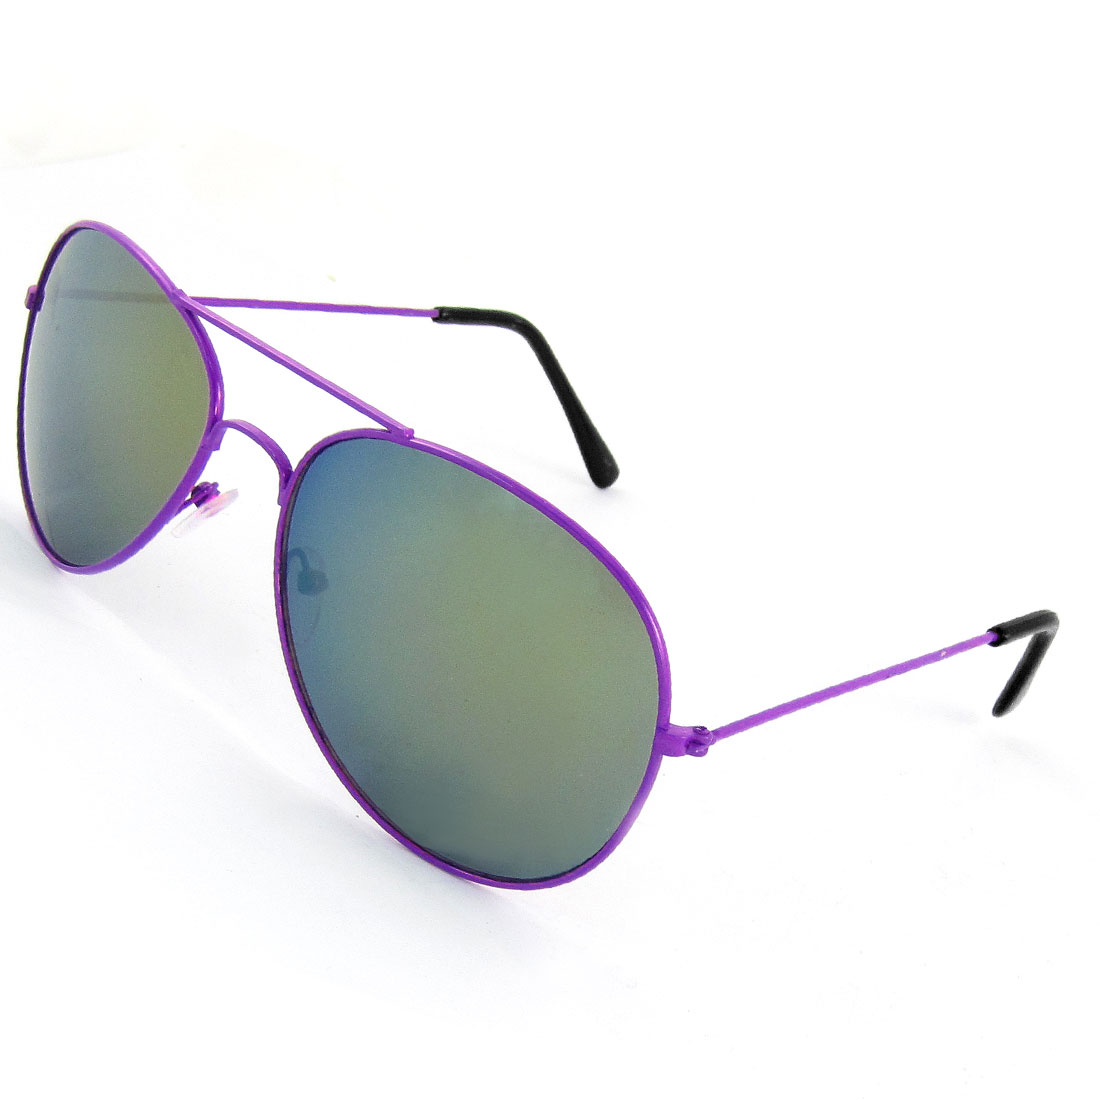 Purple Nose Pad Dual Bridge Tinted Lens Portective Sunglasses for Woman